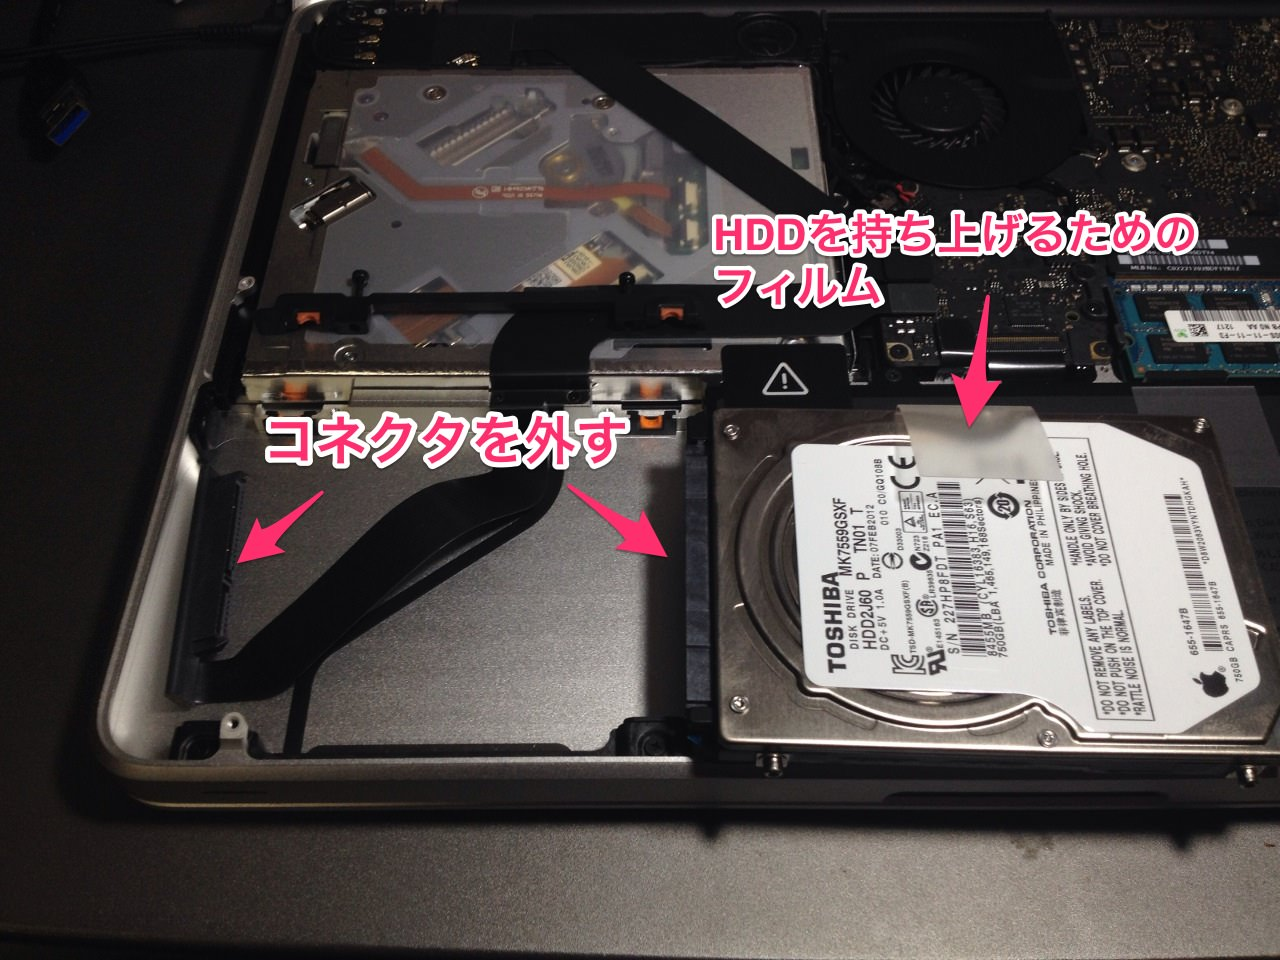 how-to-upgrade-your-macbook-pro-to-a-ssd-10